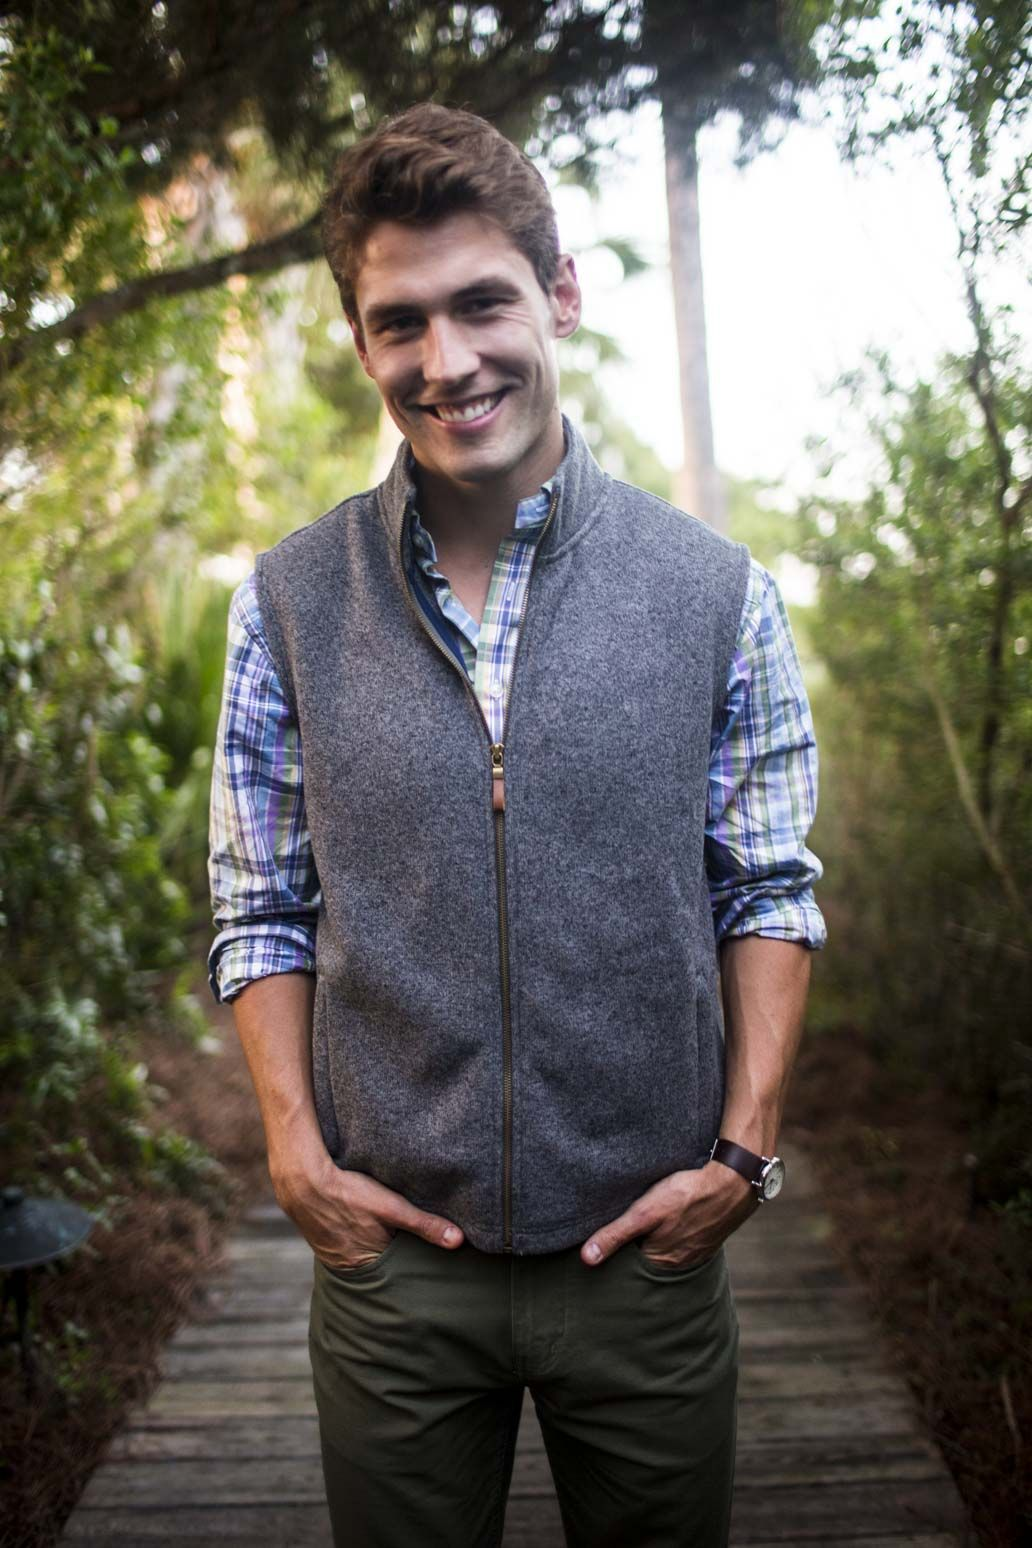 Vests Are Too Casual Without A Suit Jacket Worn Over It At